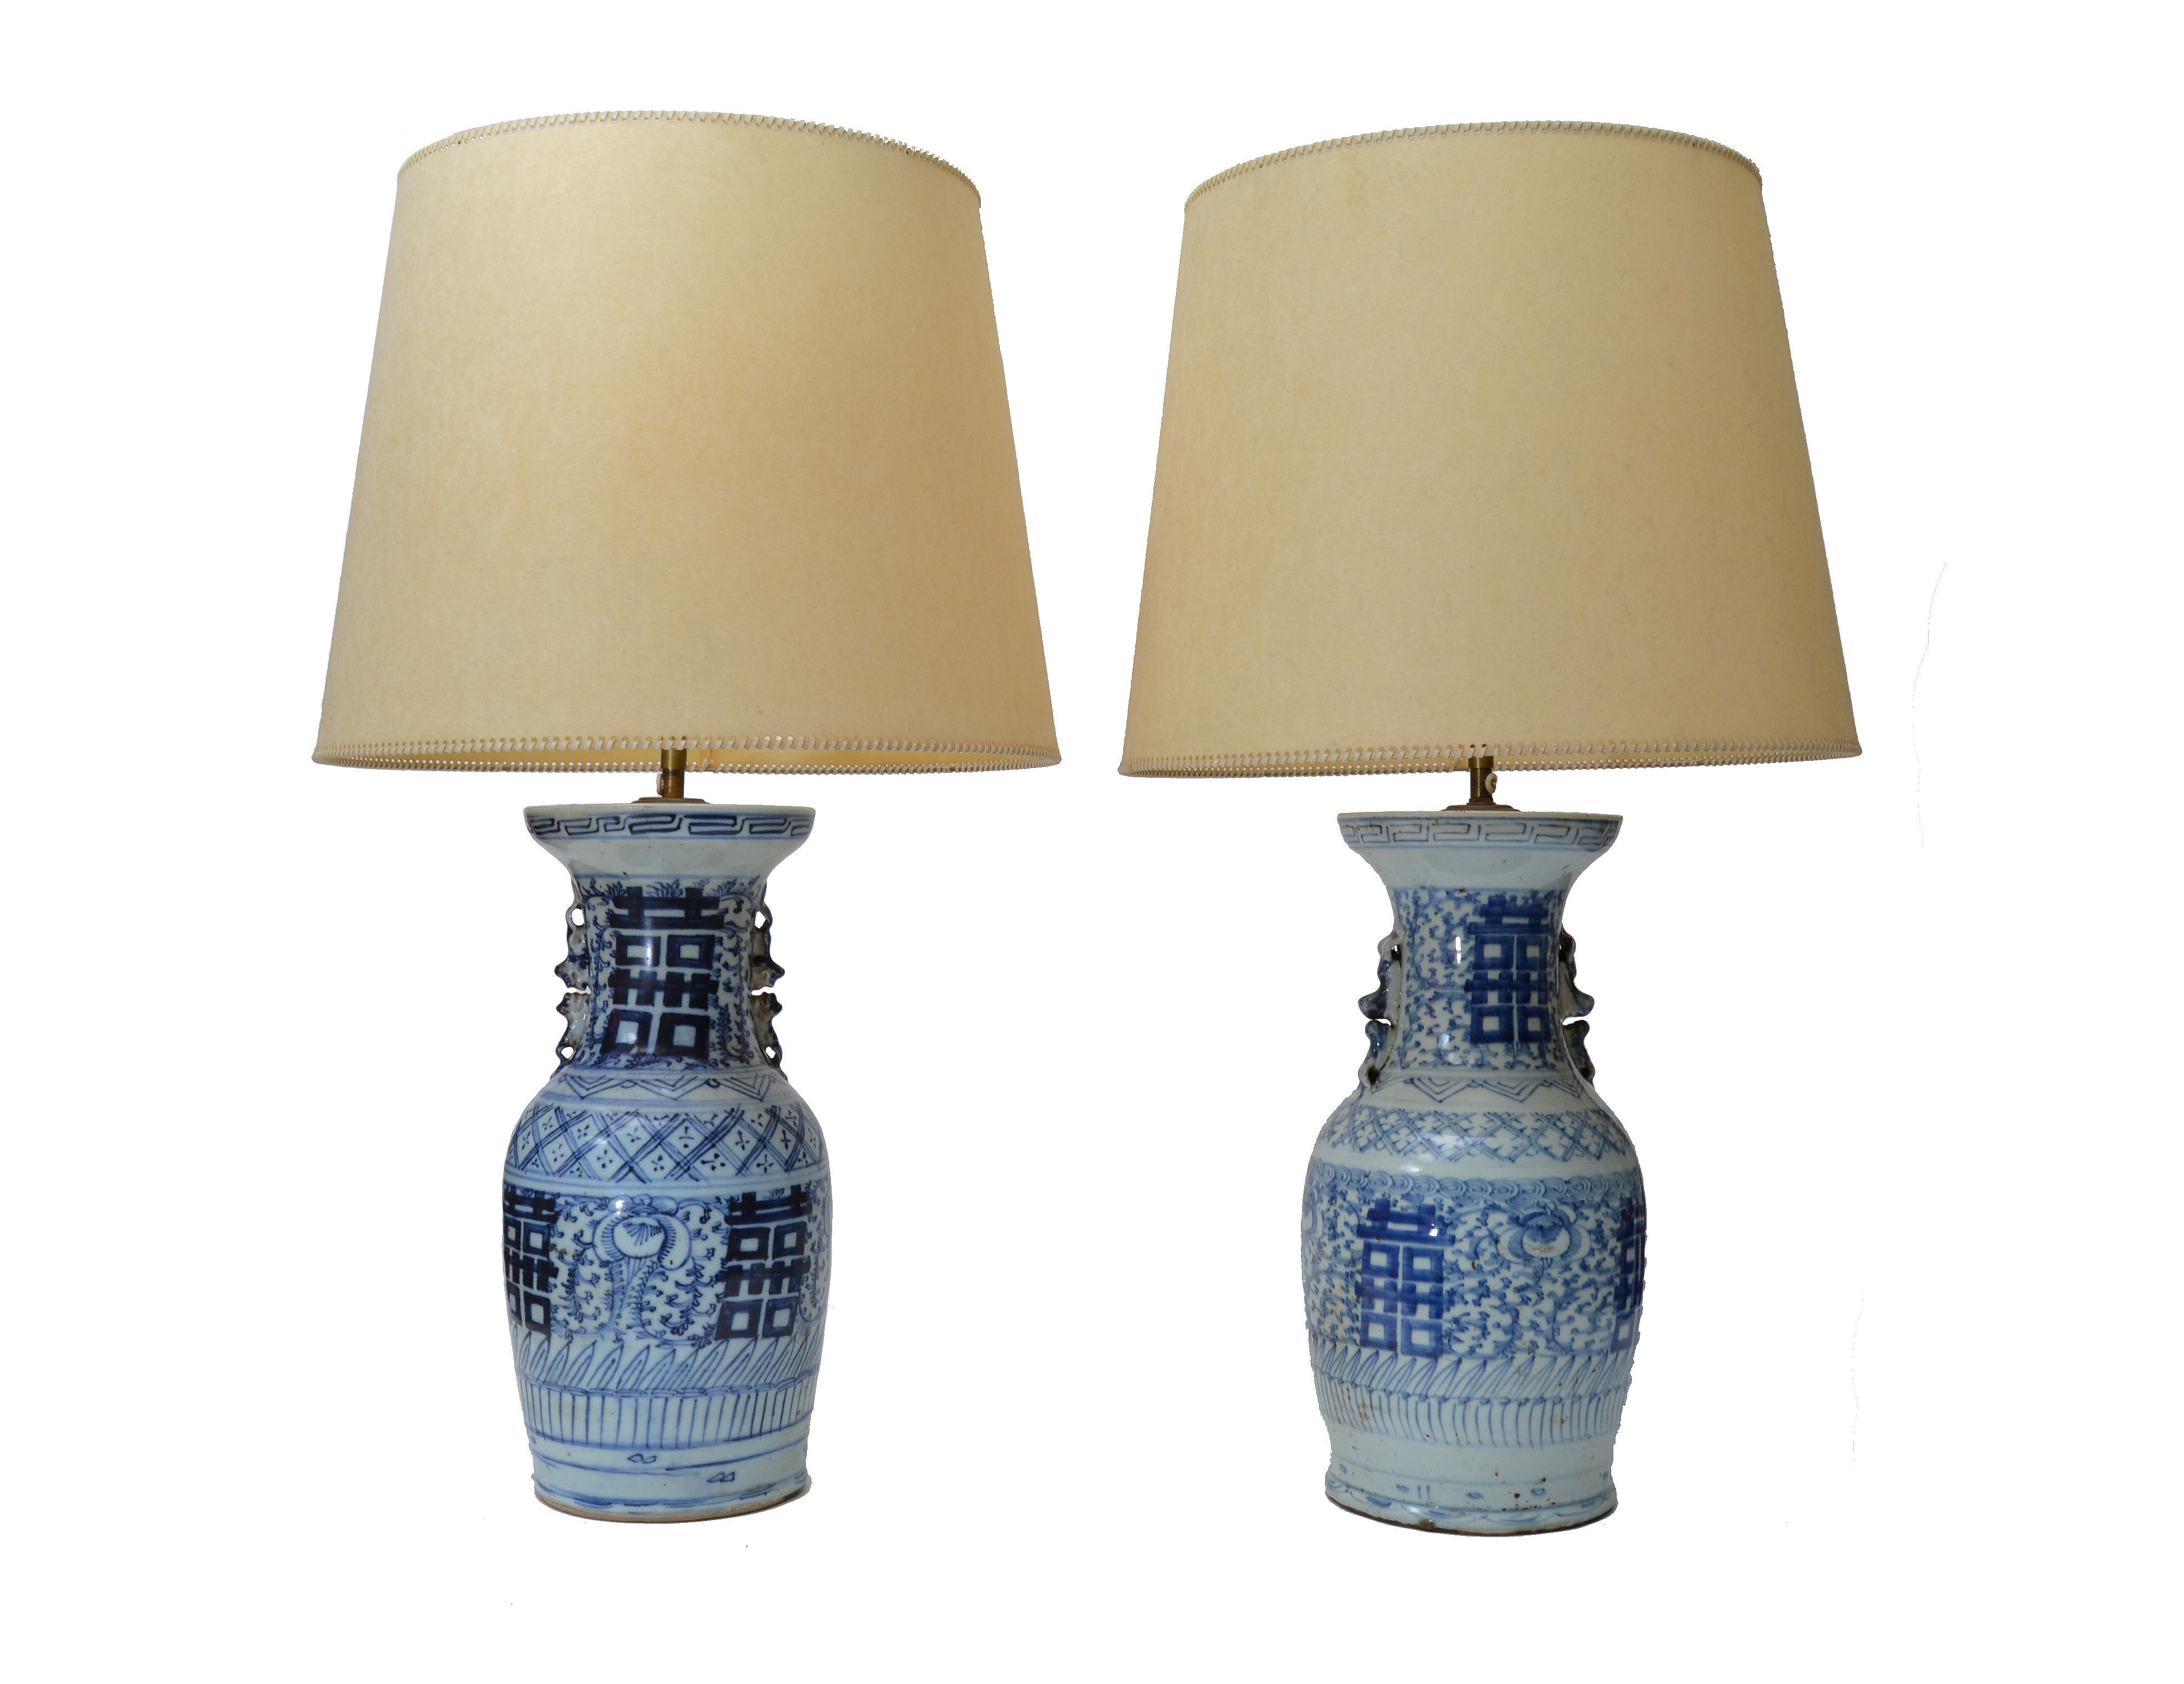 Gentil Chinese Blue Grey Pottery Table Lamps With Original Shades, Pair   Image 6  Of 6